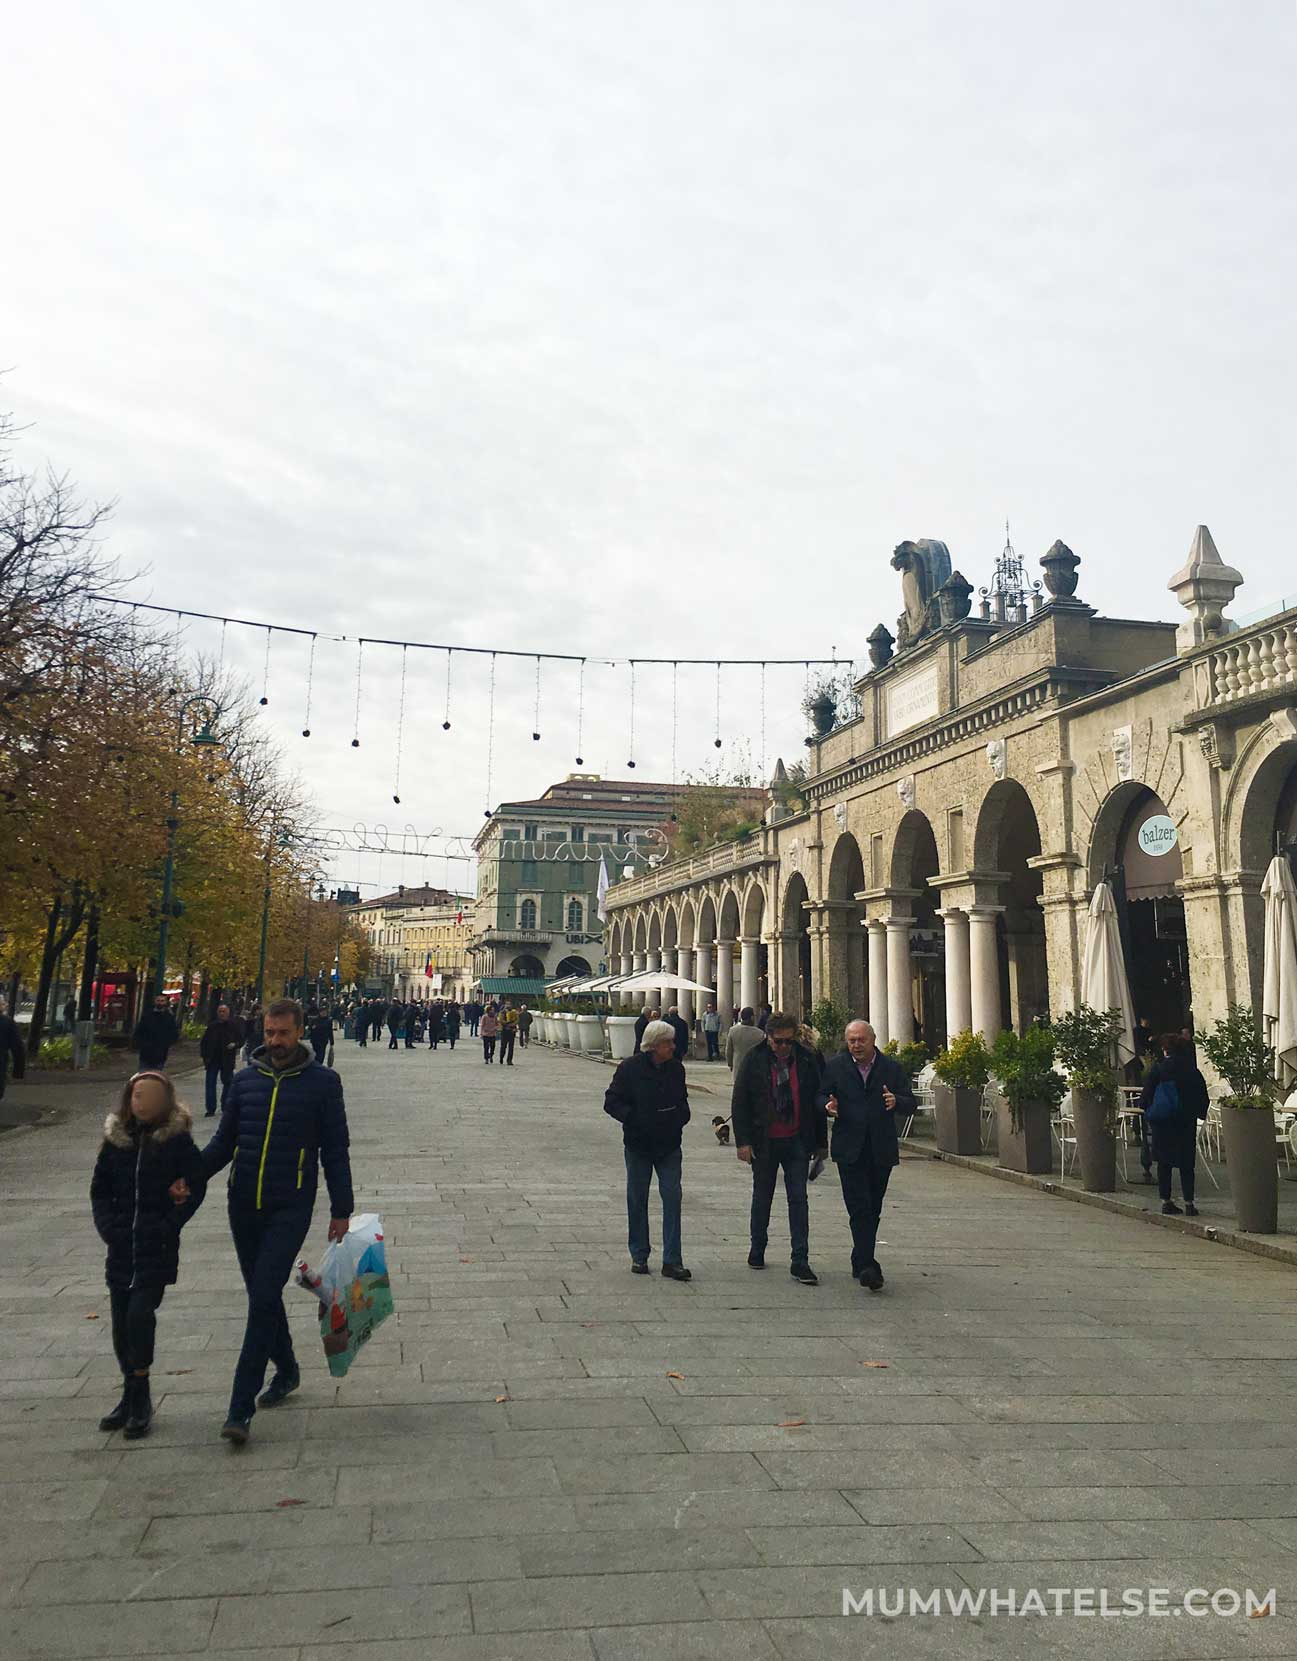 The Sentierone in Bergamo with people strolling